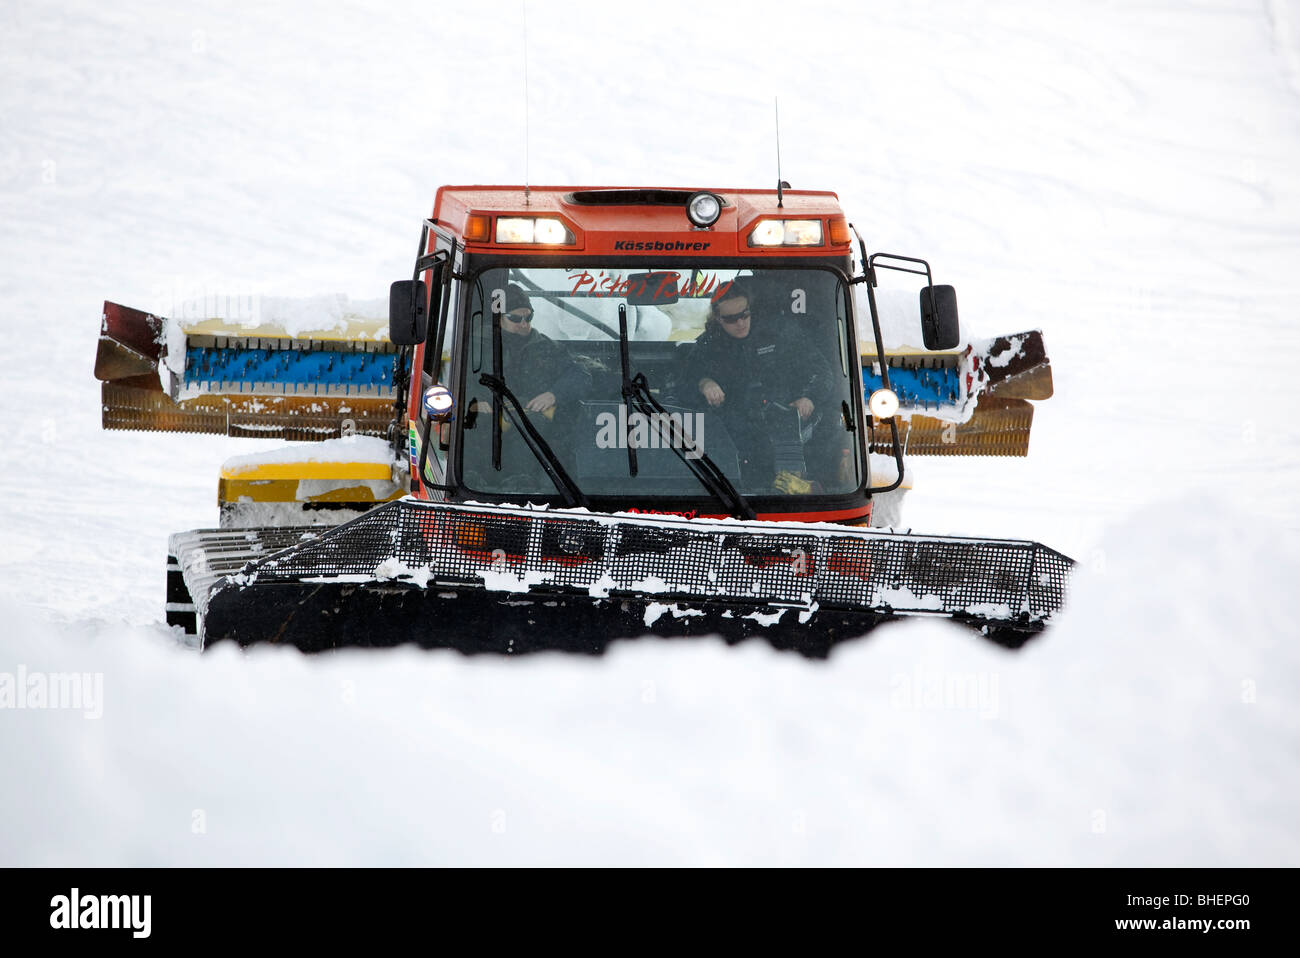 A piste tractor operating in the Cairngorms, Scottish Highlands in deep winter snow. - Stock Image